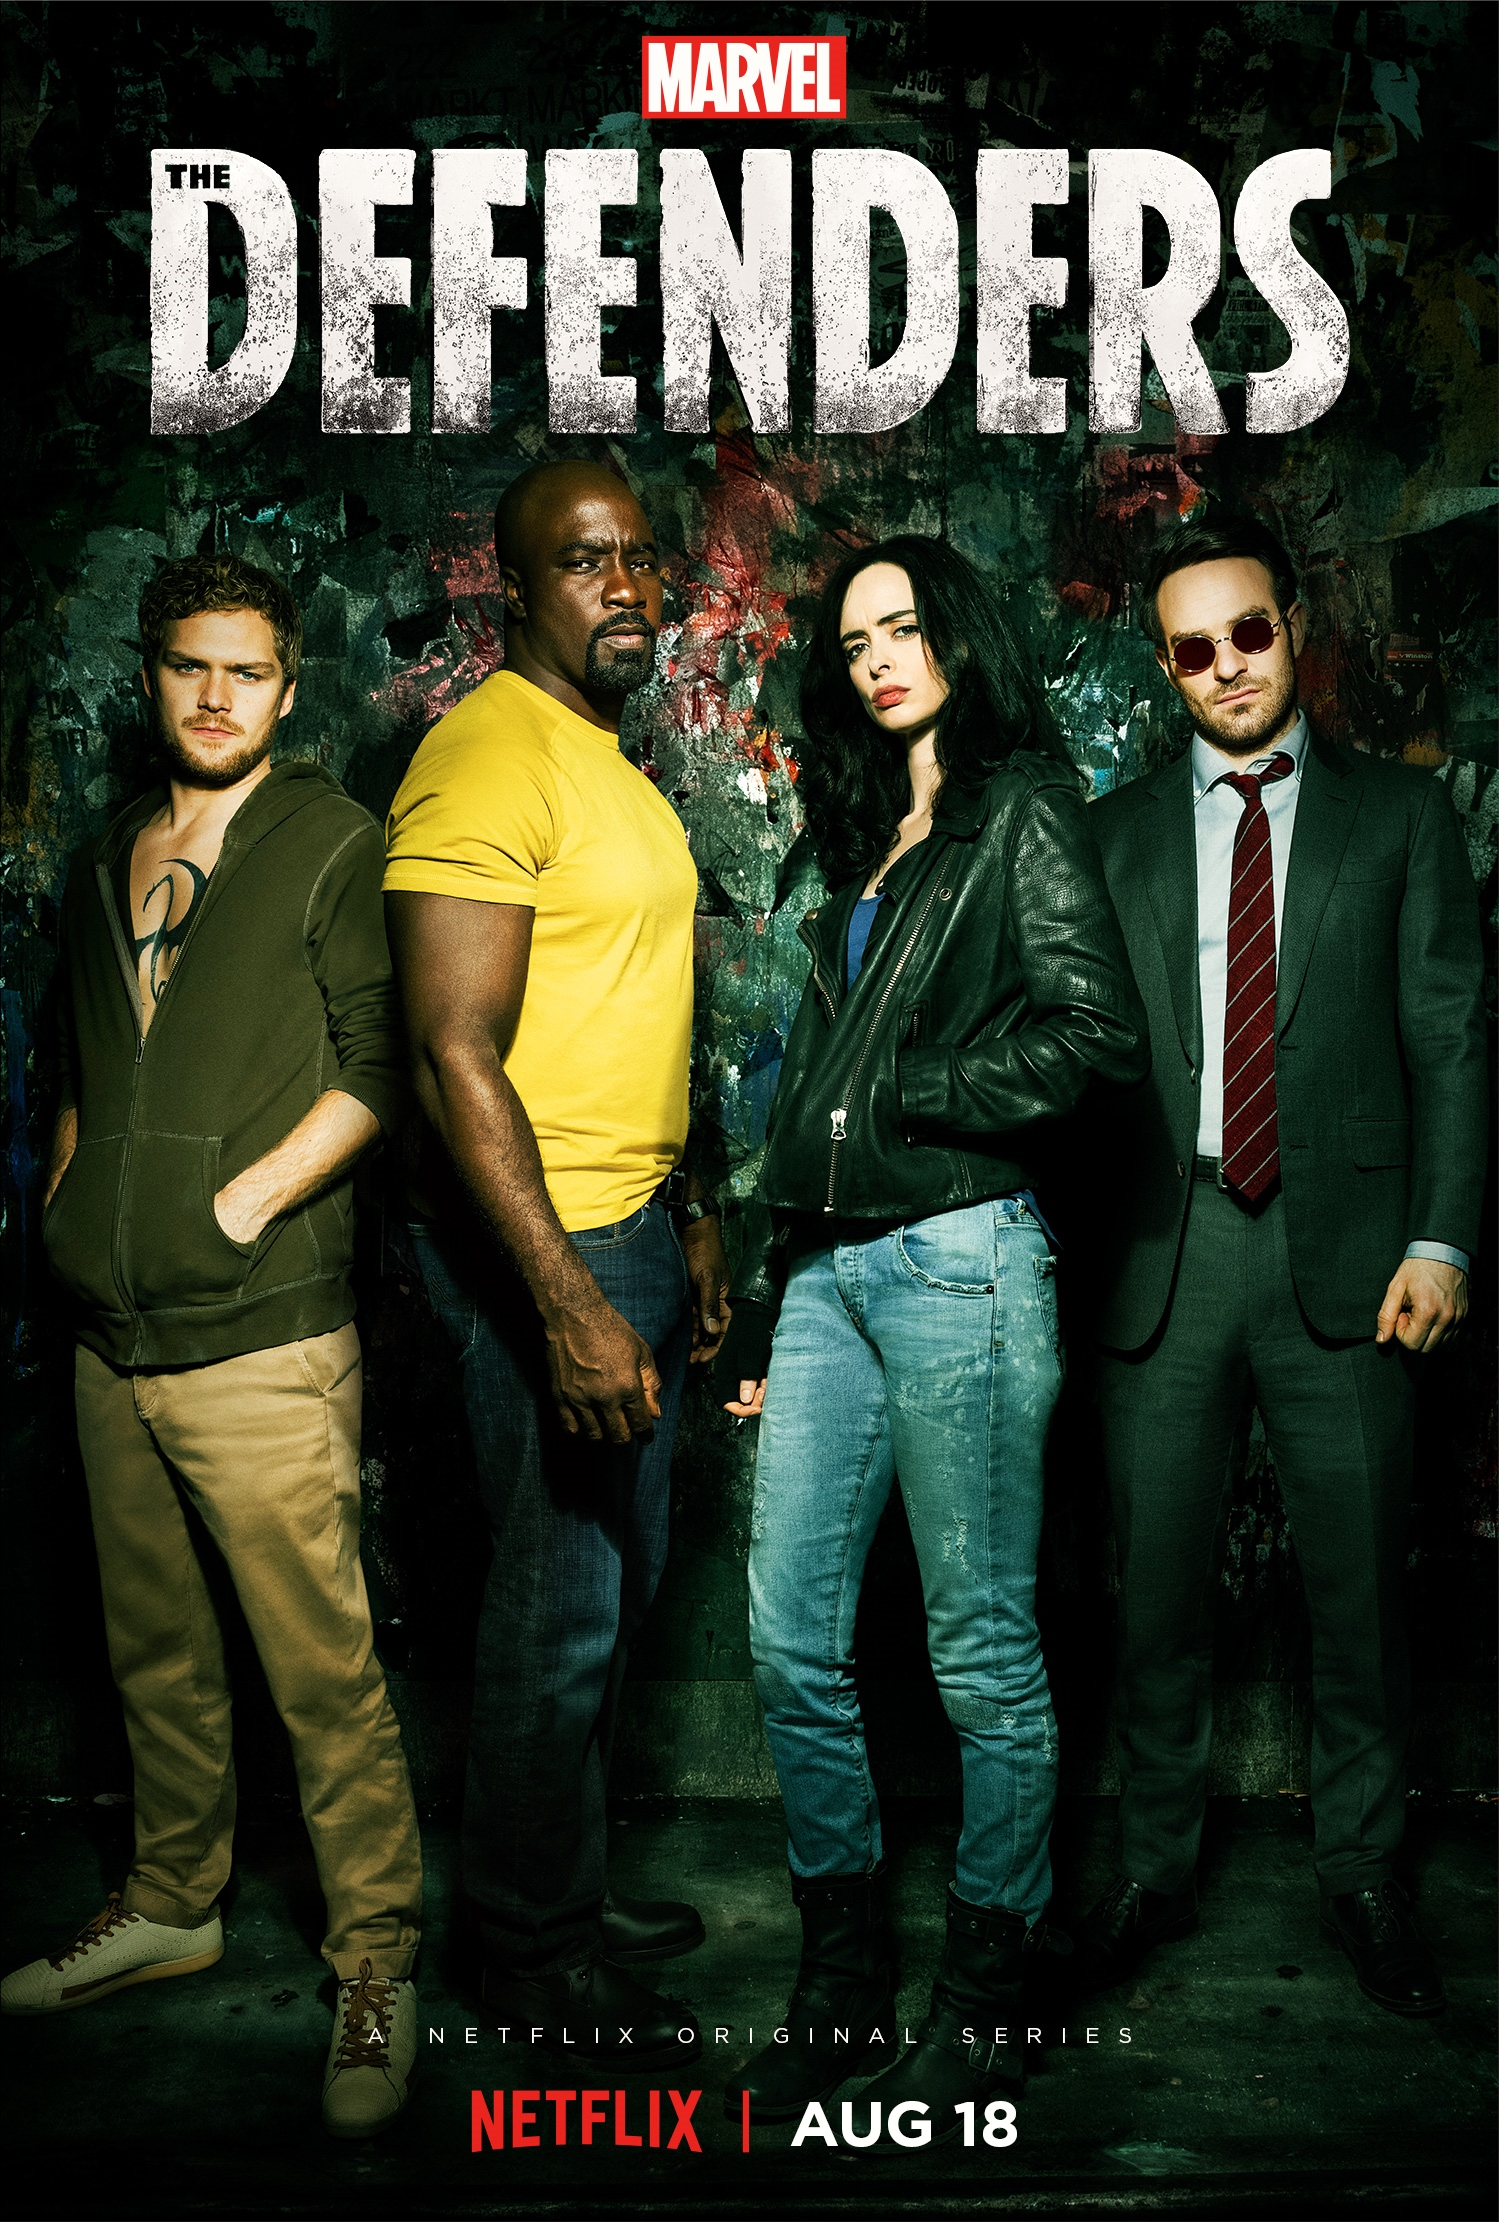 Opinión sobre la serie The Defenders